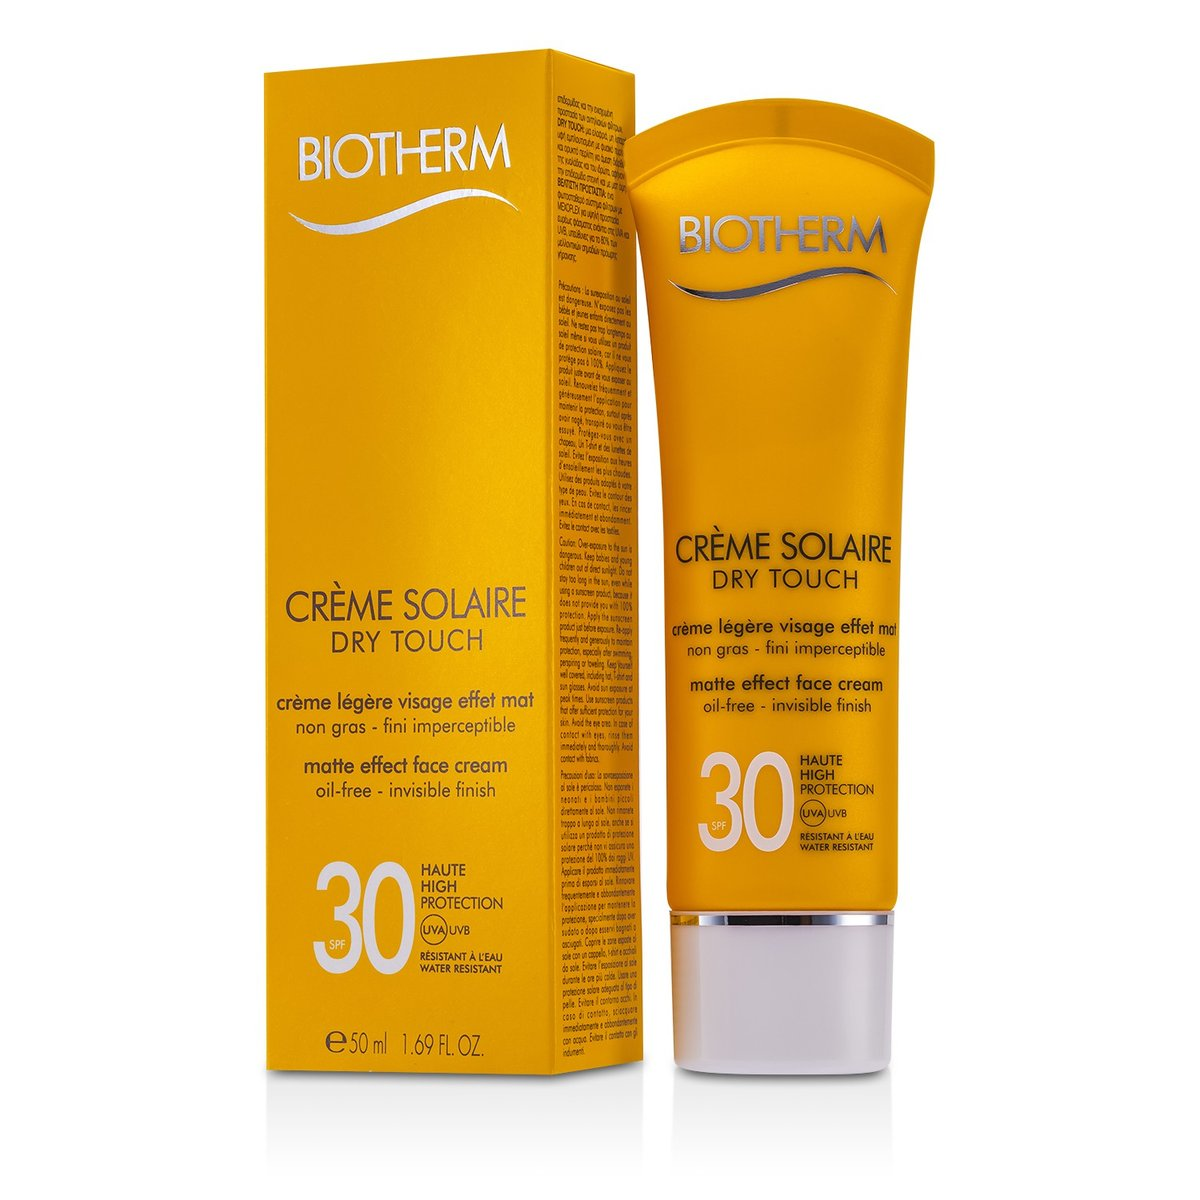 Creme Solaire SPF 30 Dry Touch UVA/UVB Matte Effect Face Cream  -[Parallel Import Product]